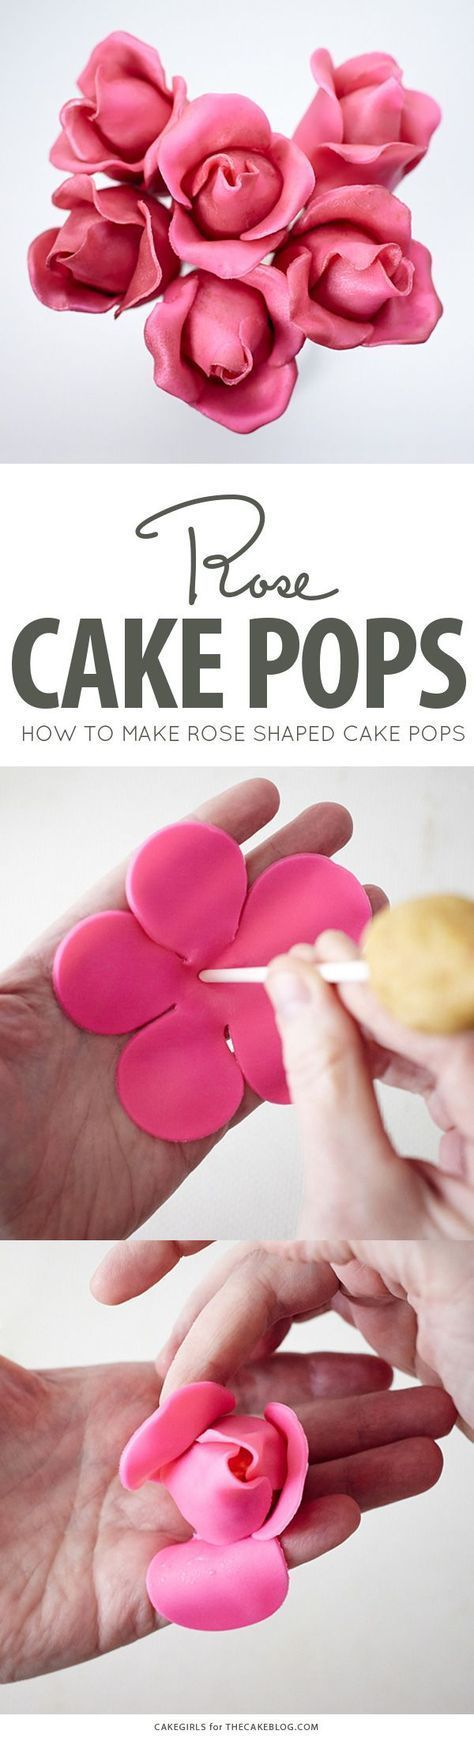 DIY Rose Cake Pops, an adorable dessert for Valentine's Day, Mother's Day and bridal showers   by Cakegirls for http://TheCakeBlog.com